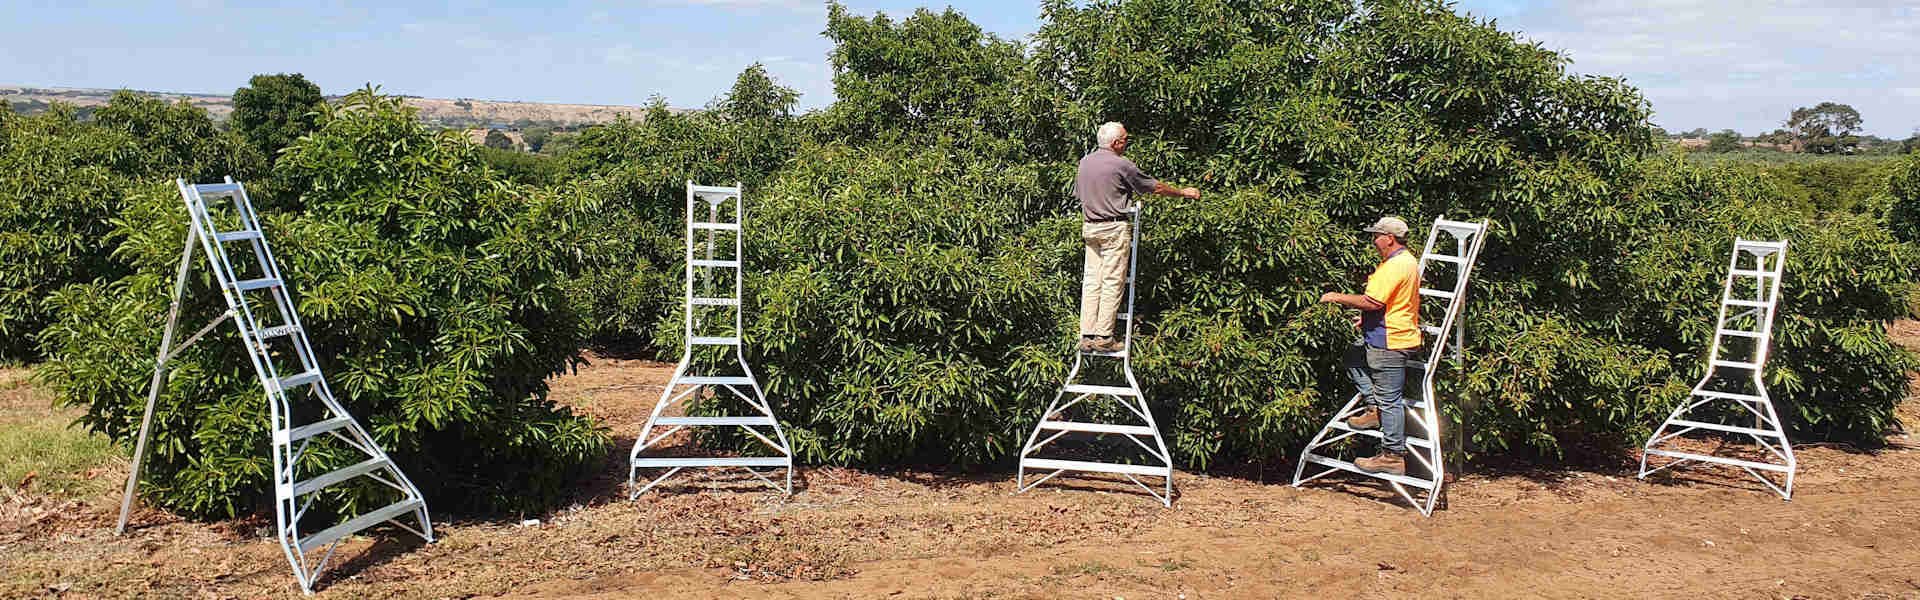 Tripod ladders with pickers